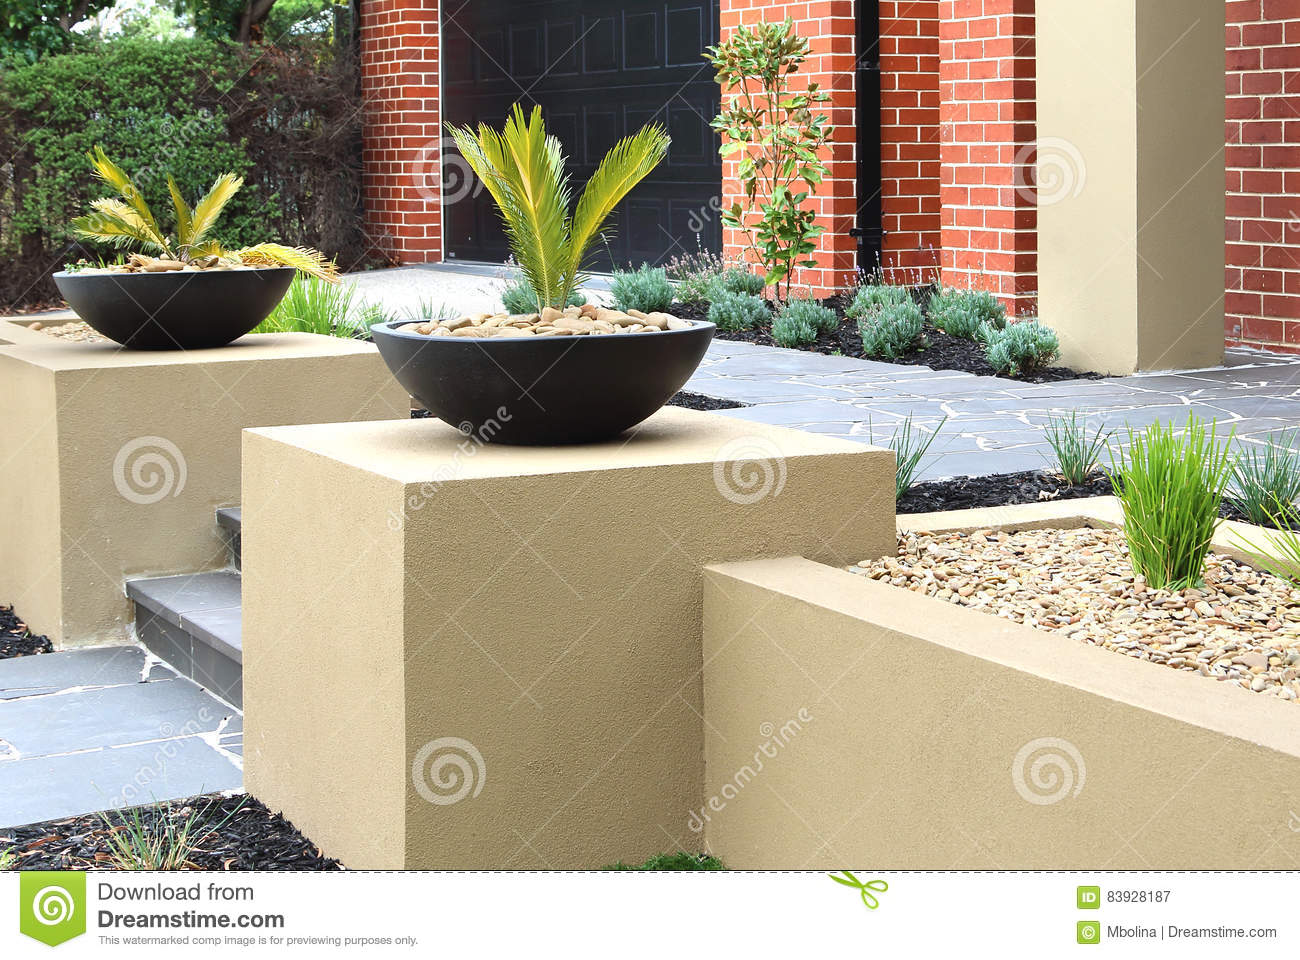 Modern front yard design ideas stock photo image 83928187 for Front yard plant ideas